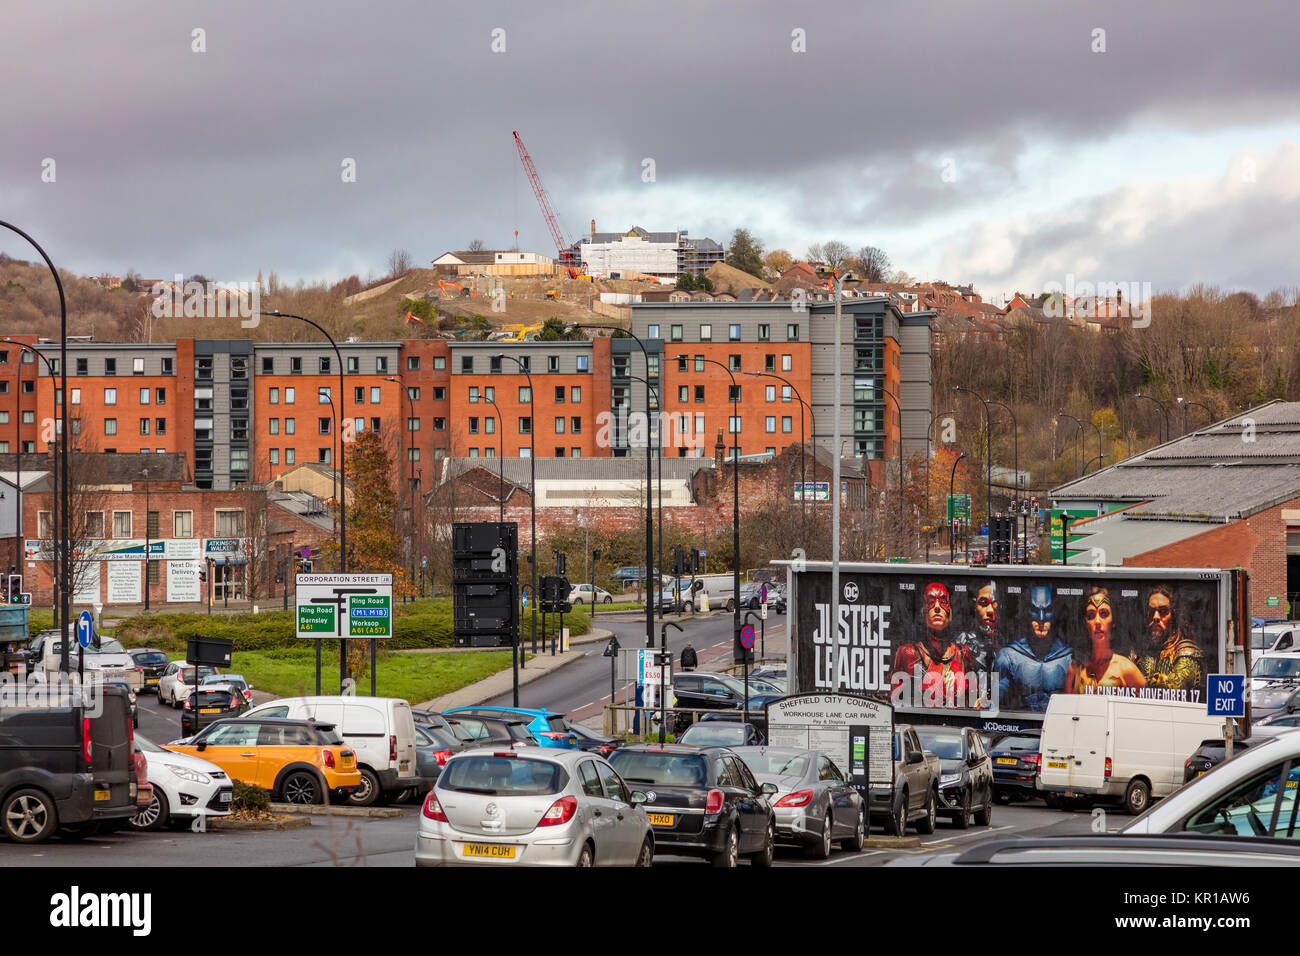 Development on a hill above Sheffield, a large Justice League poster on a hording in the foreground, Sheffield, - Stock Image